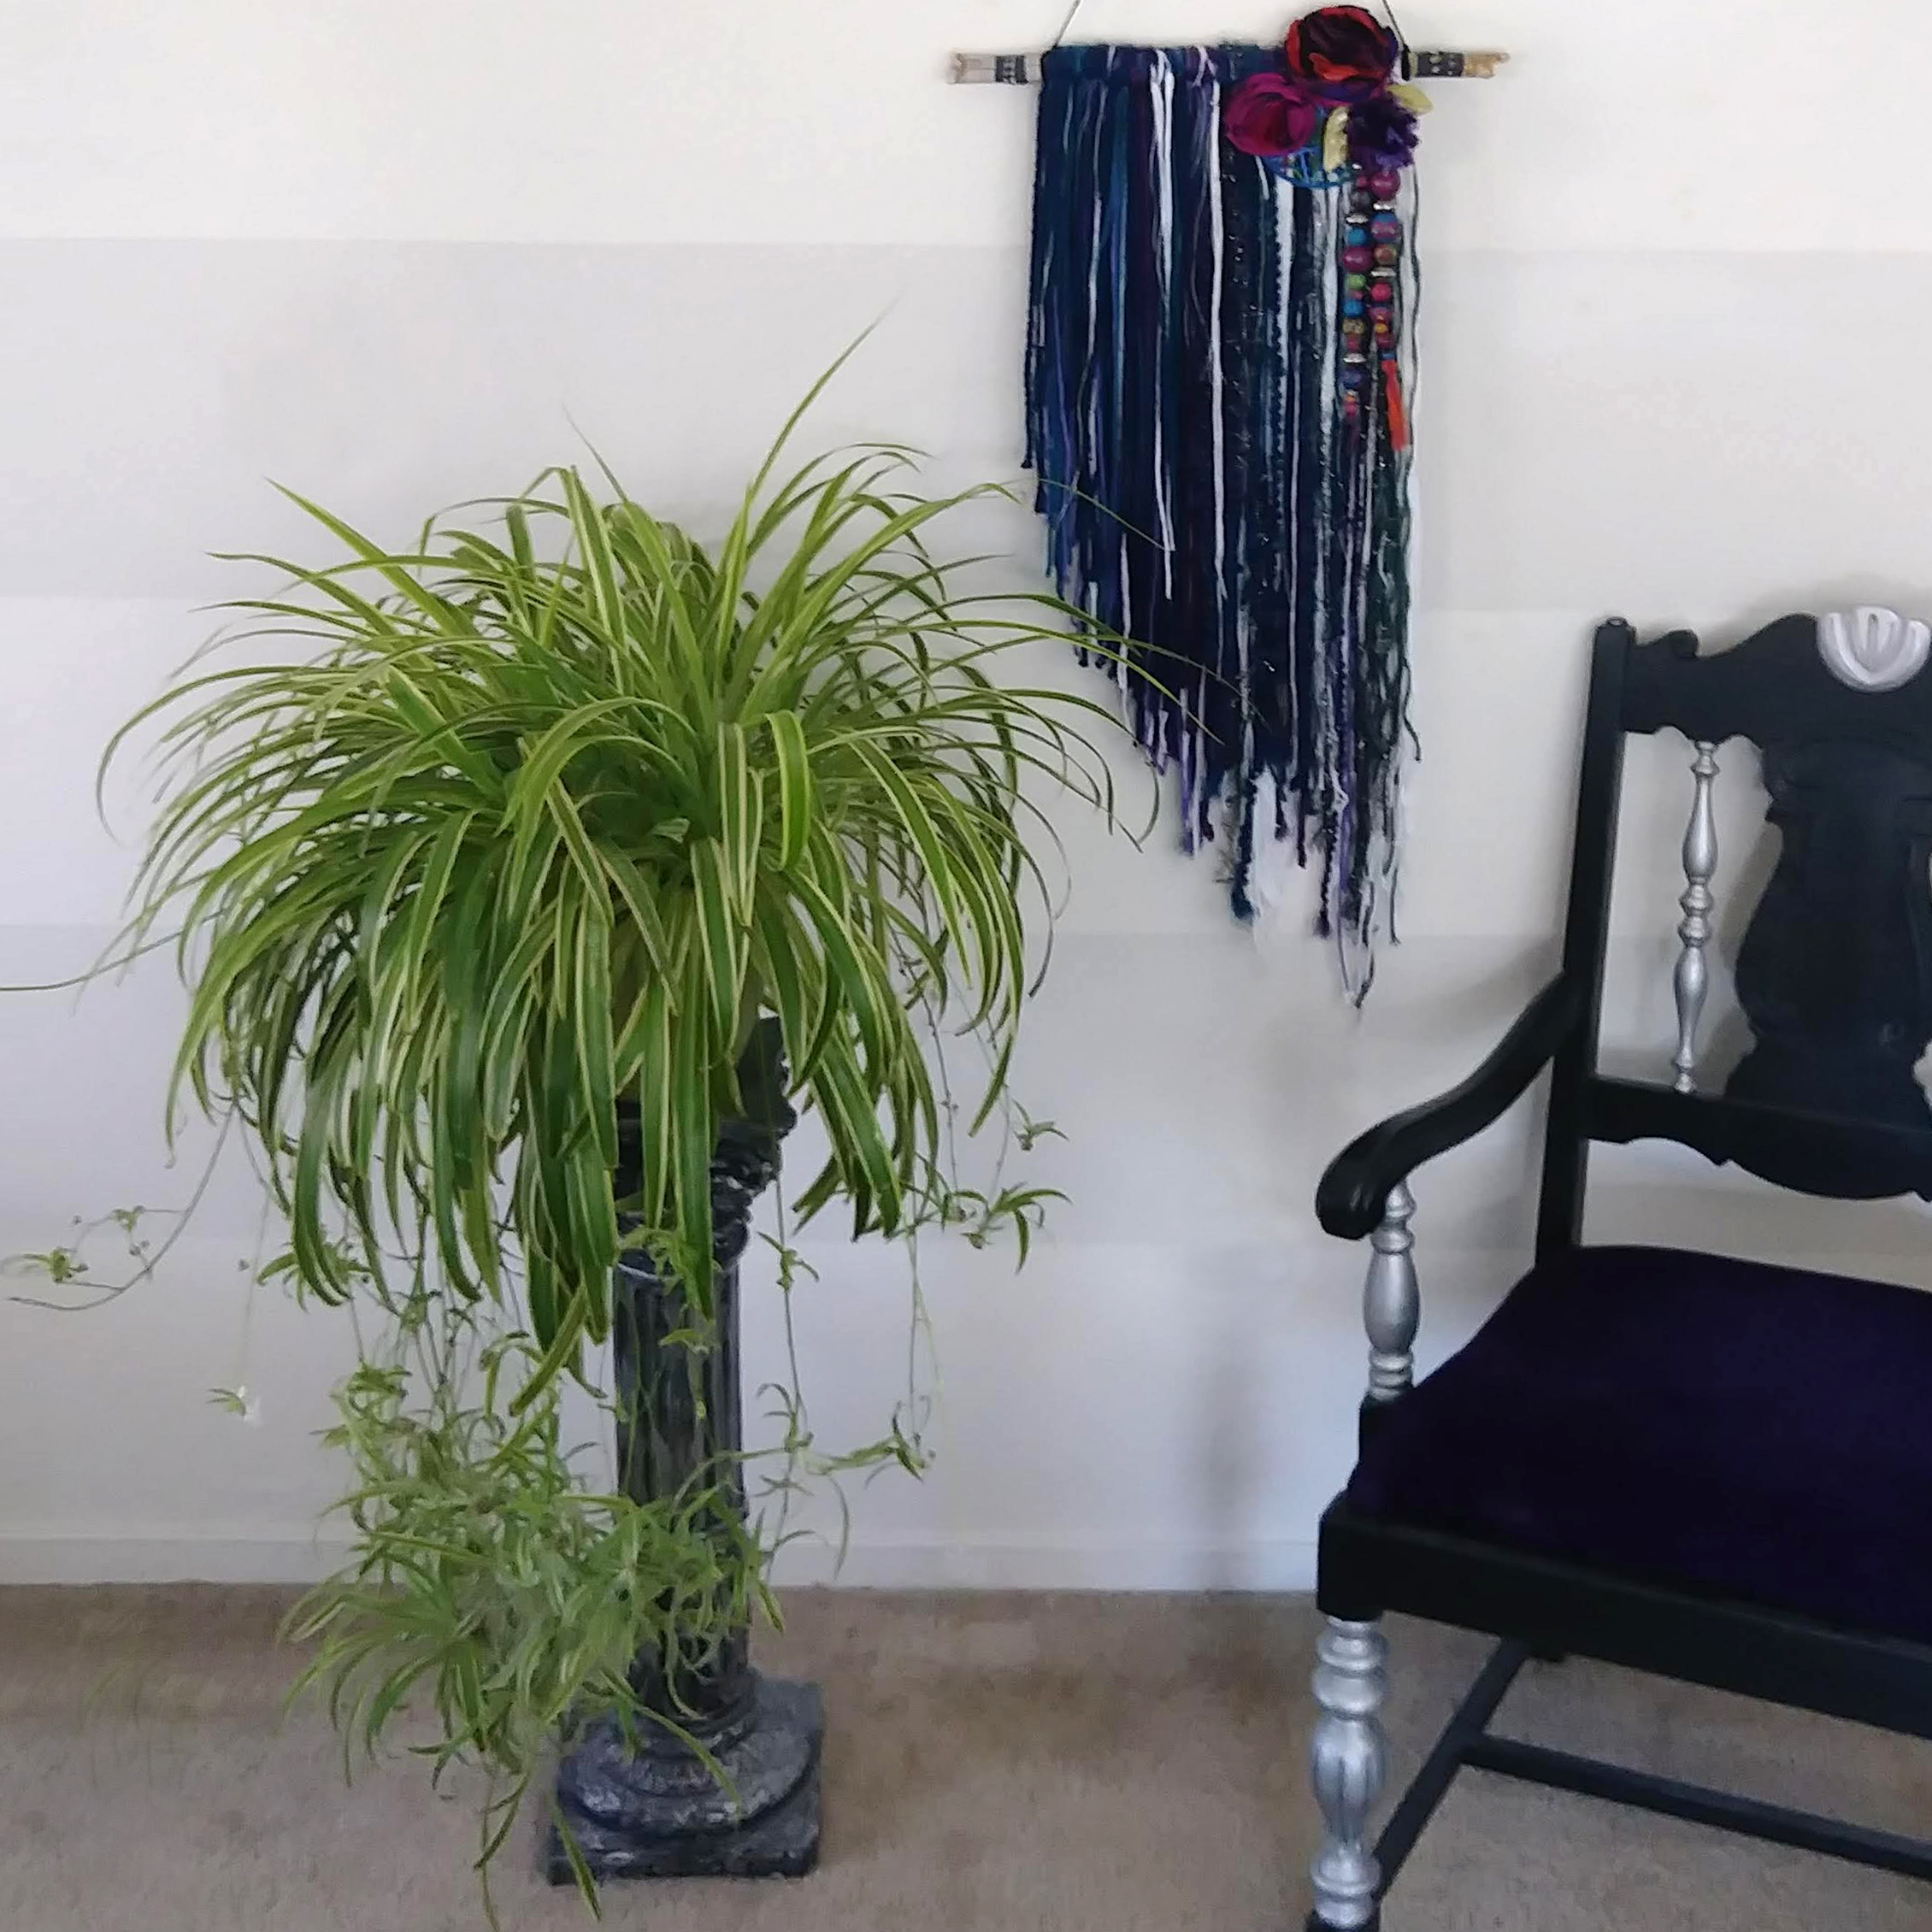 Easy to care for houseplants for eclectic home - spider plant - with Letting Go original art - Effortlessly Eclectic art & decor